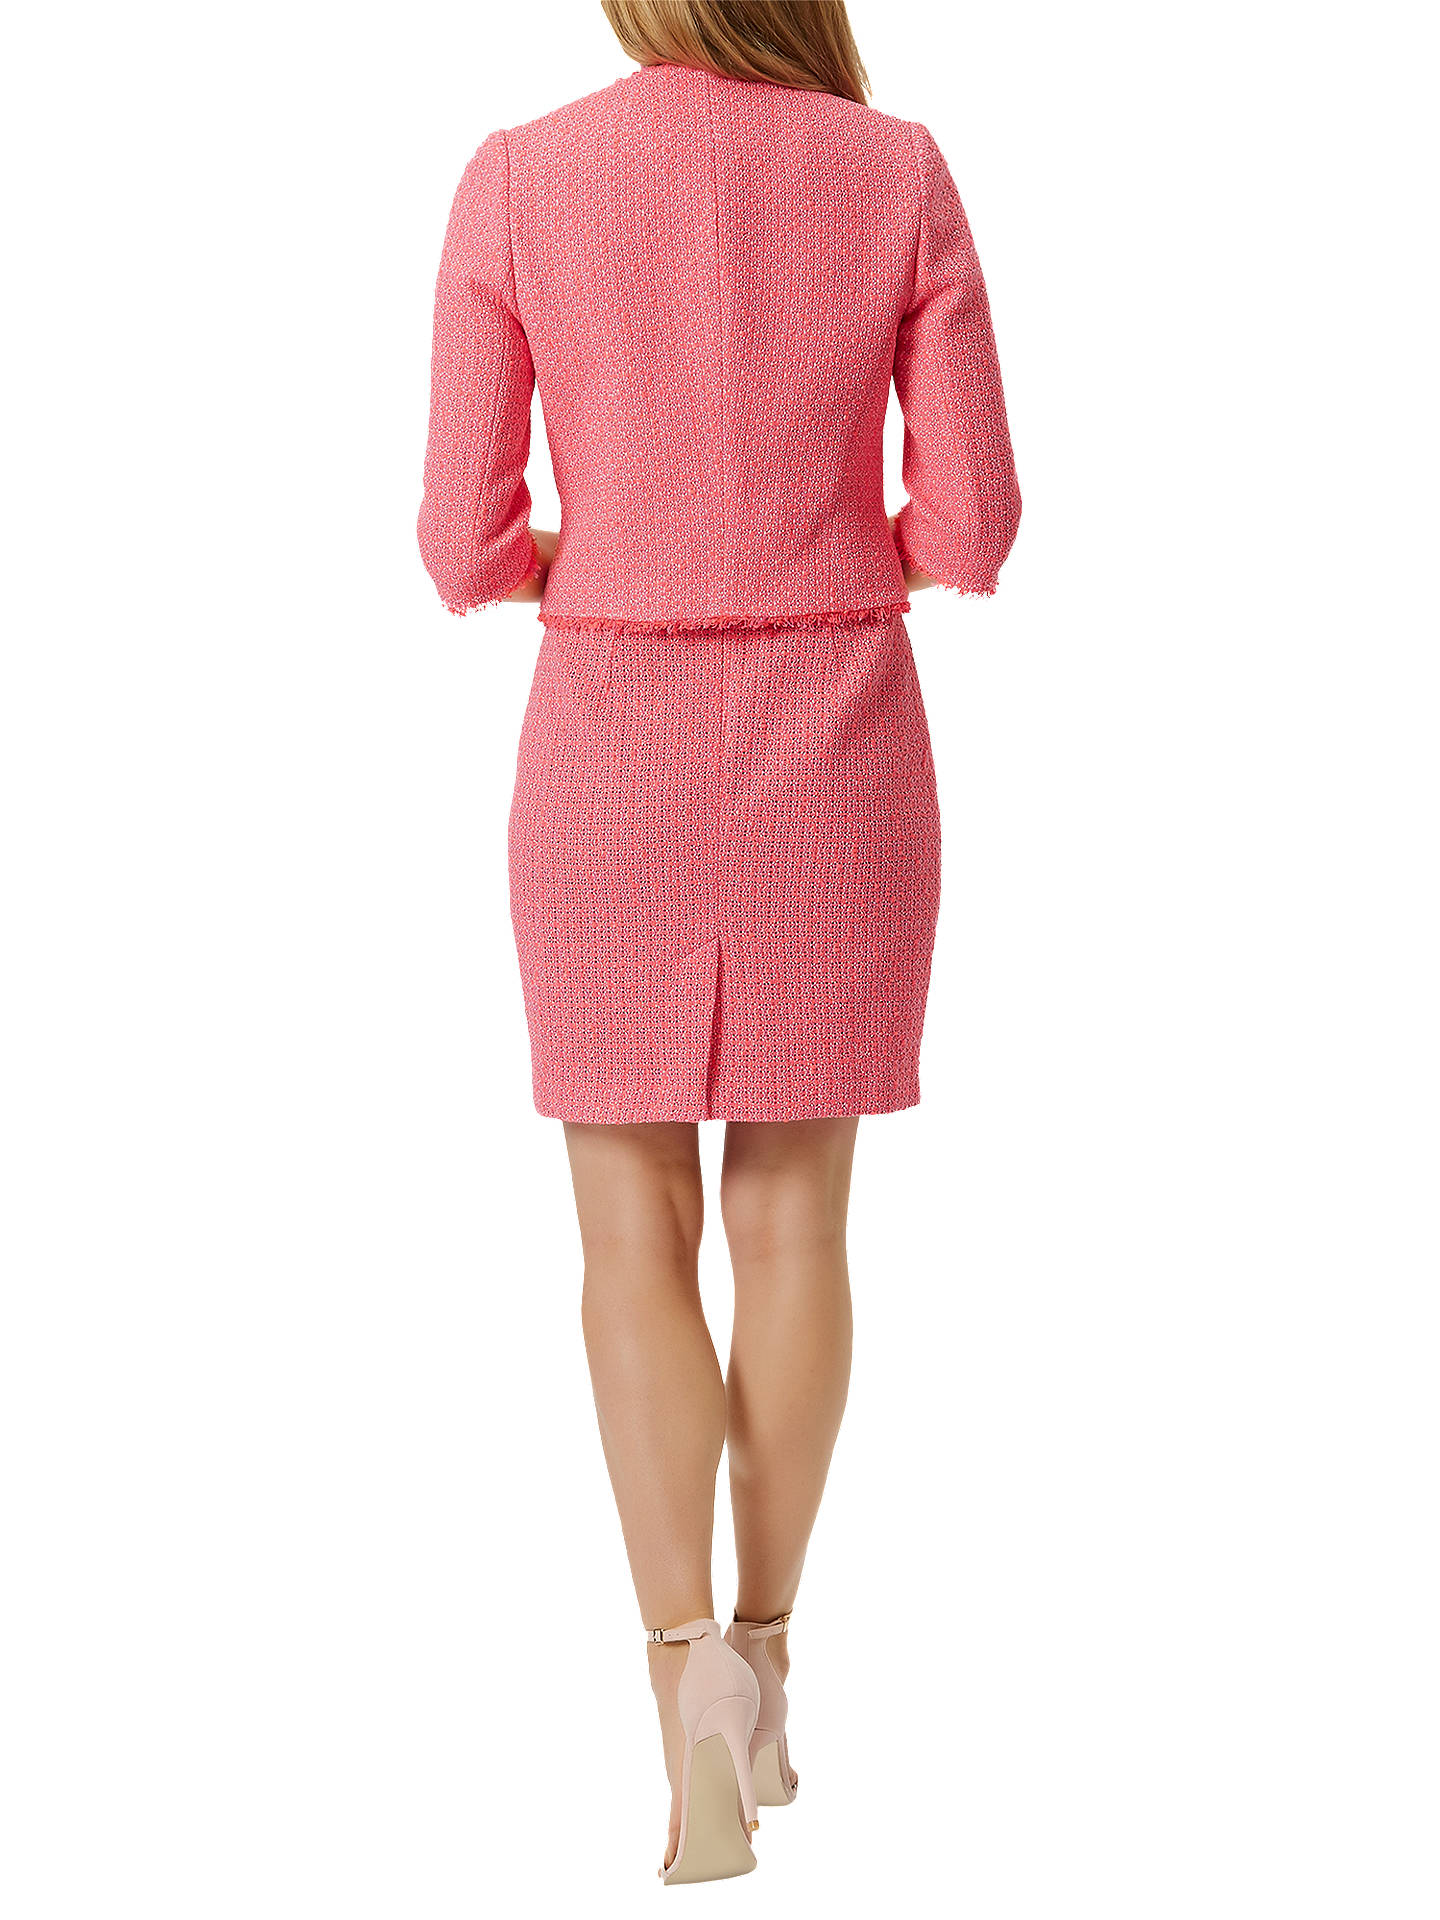 BuyDamsel in a Dress Aquitaine Jacket, Pink, 12 Online at johnlewis.com